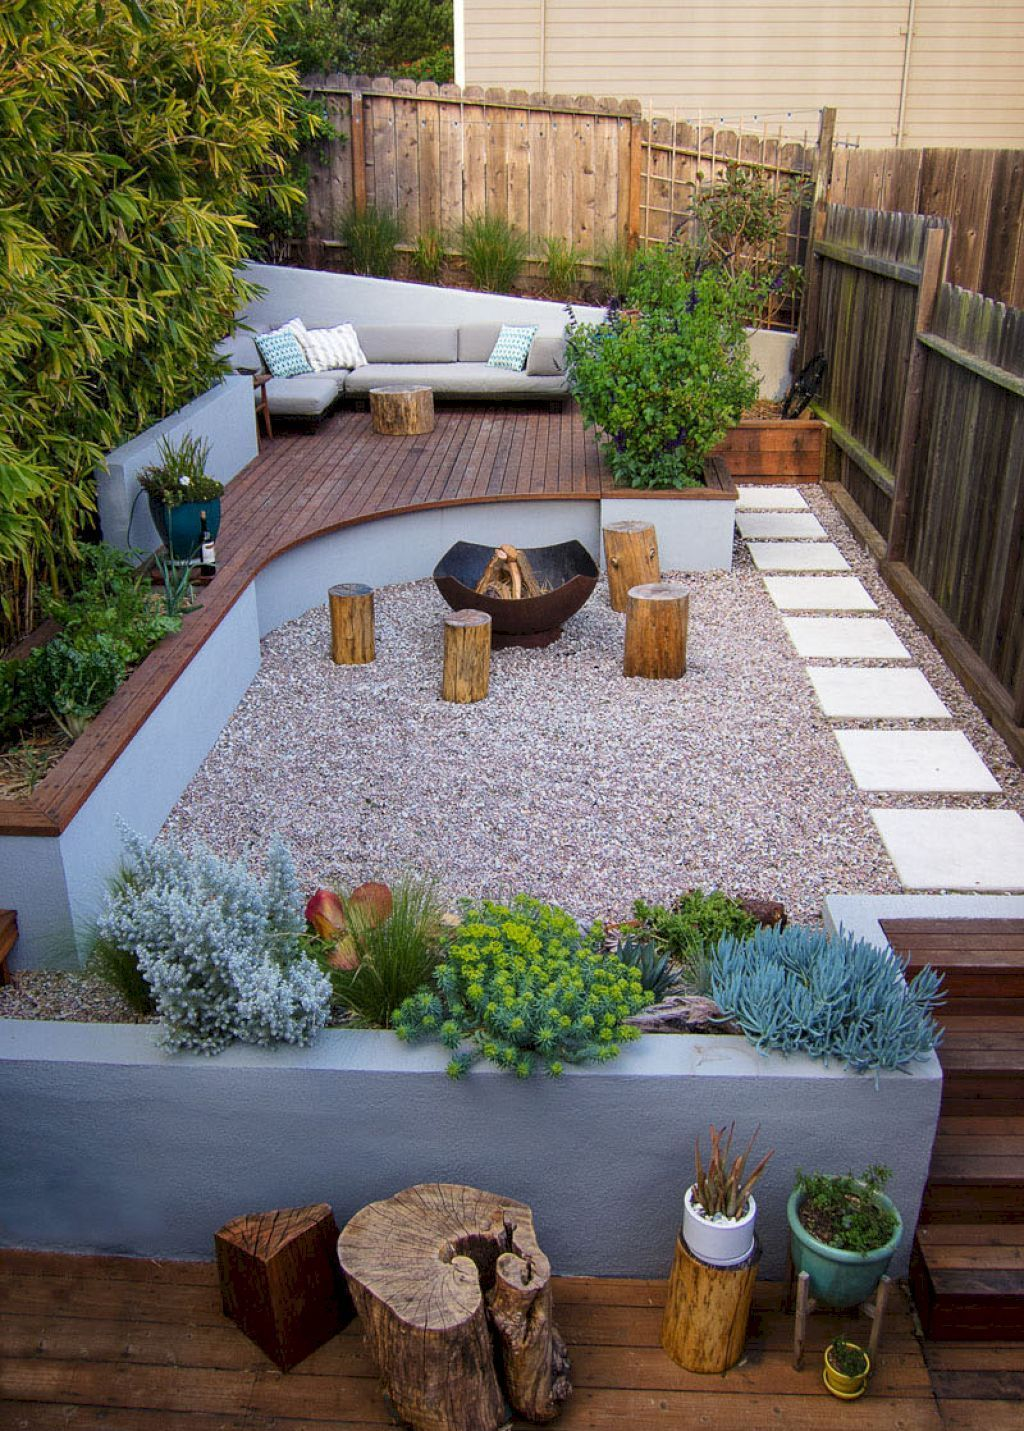 Awesome 45 Fresh And Beautiful Backyard Landscaping Ideas On A